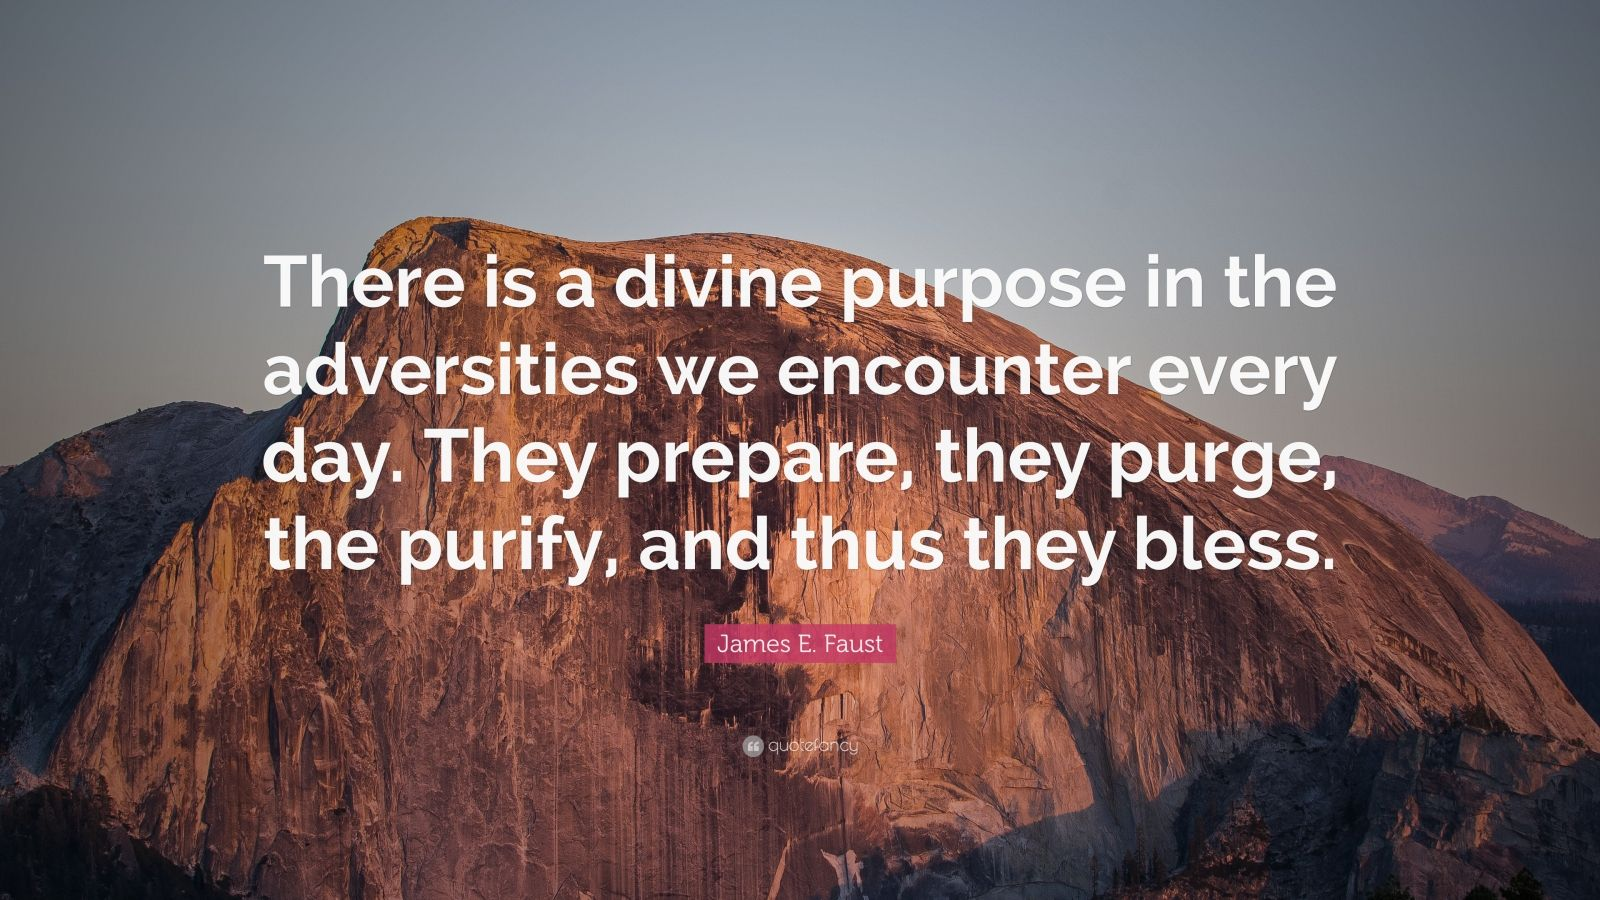 """James E. Faust Quote: """"There is a divine purpose in the adversities we encounter every day. They prepare, they purge, the purify, and thus they bless."""""""